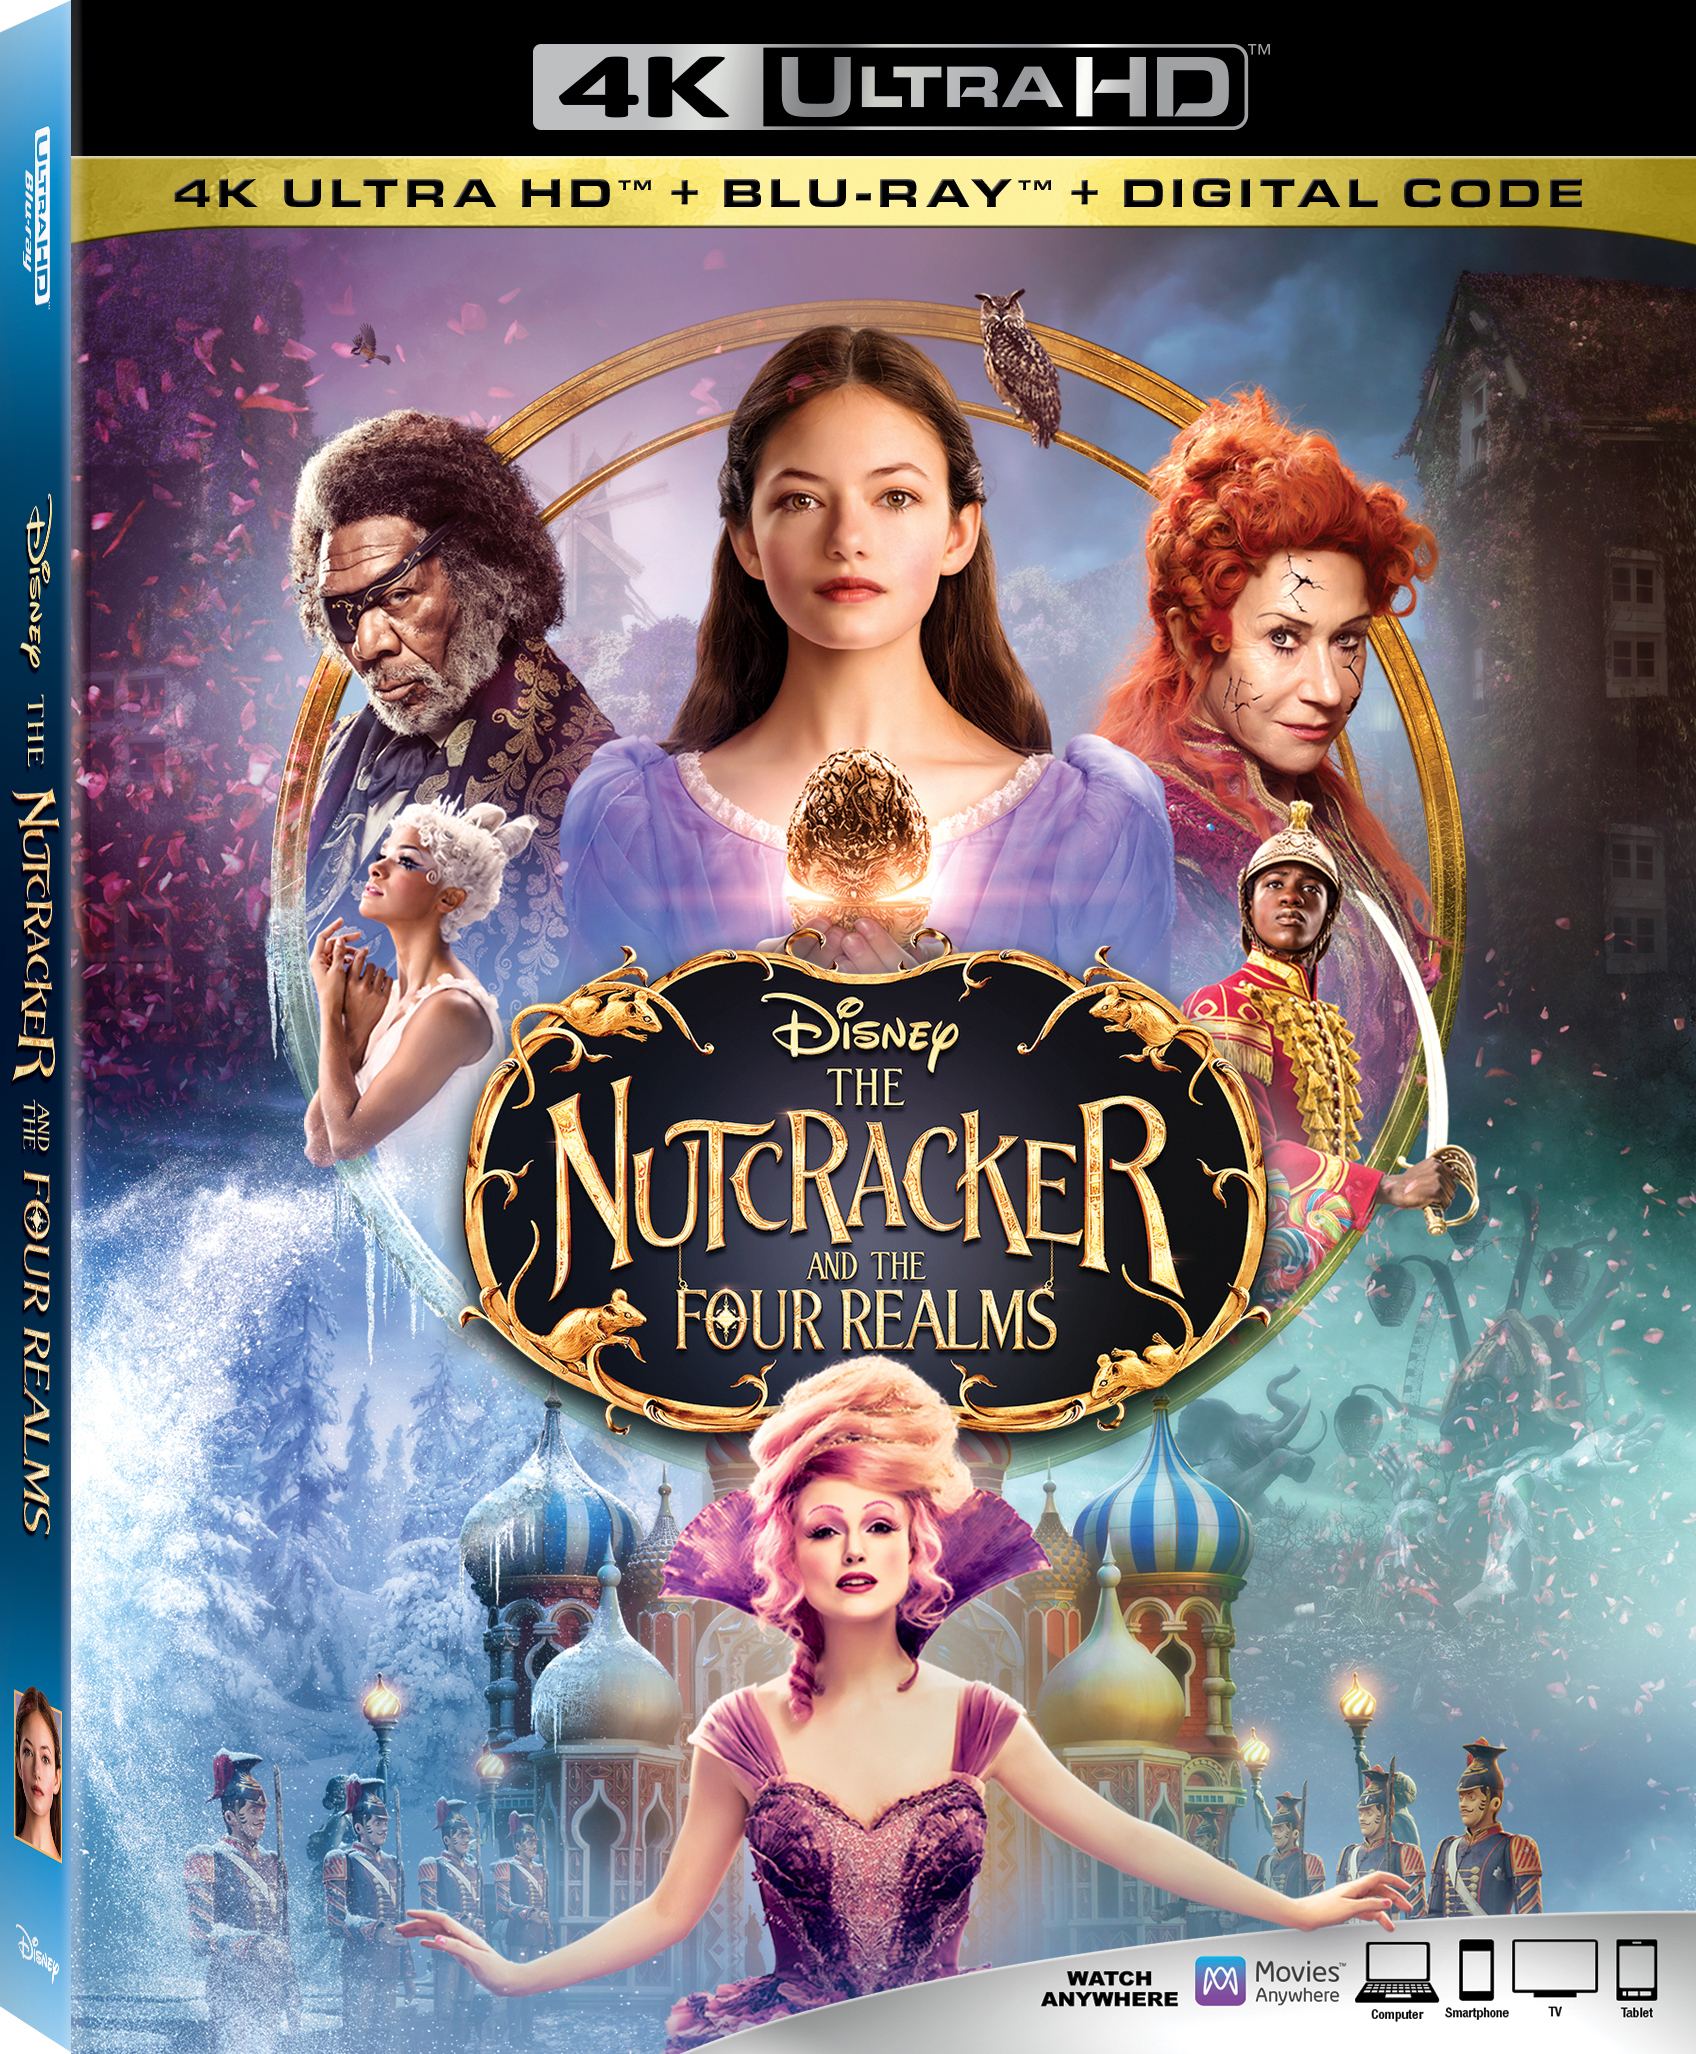 The Nutcracker and the Four Realms (4K Ultra HD Blu-ray)(Pre-order / TBA)